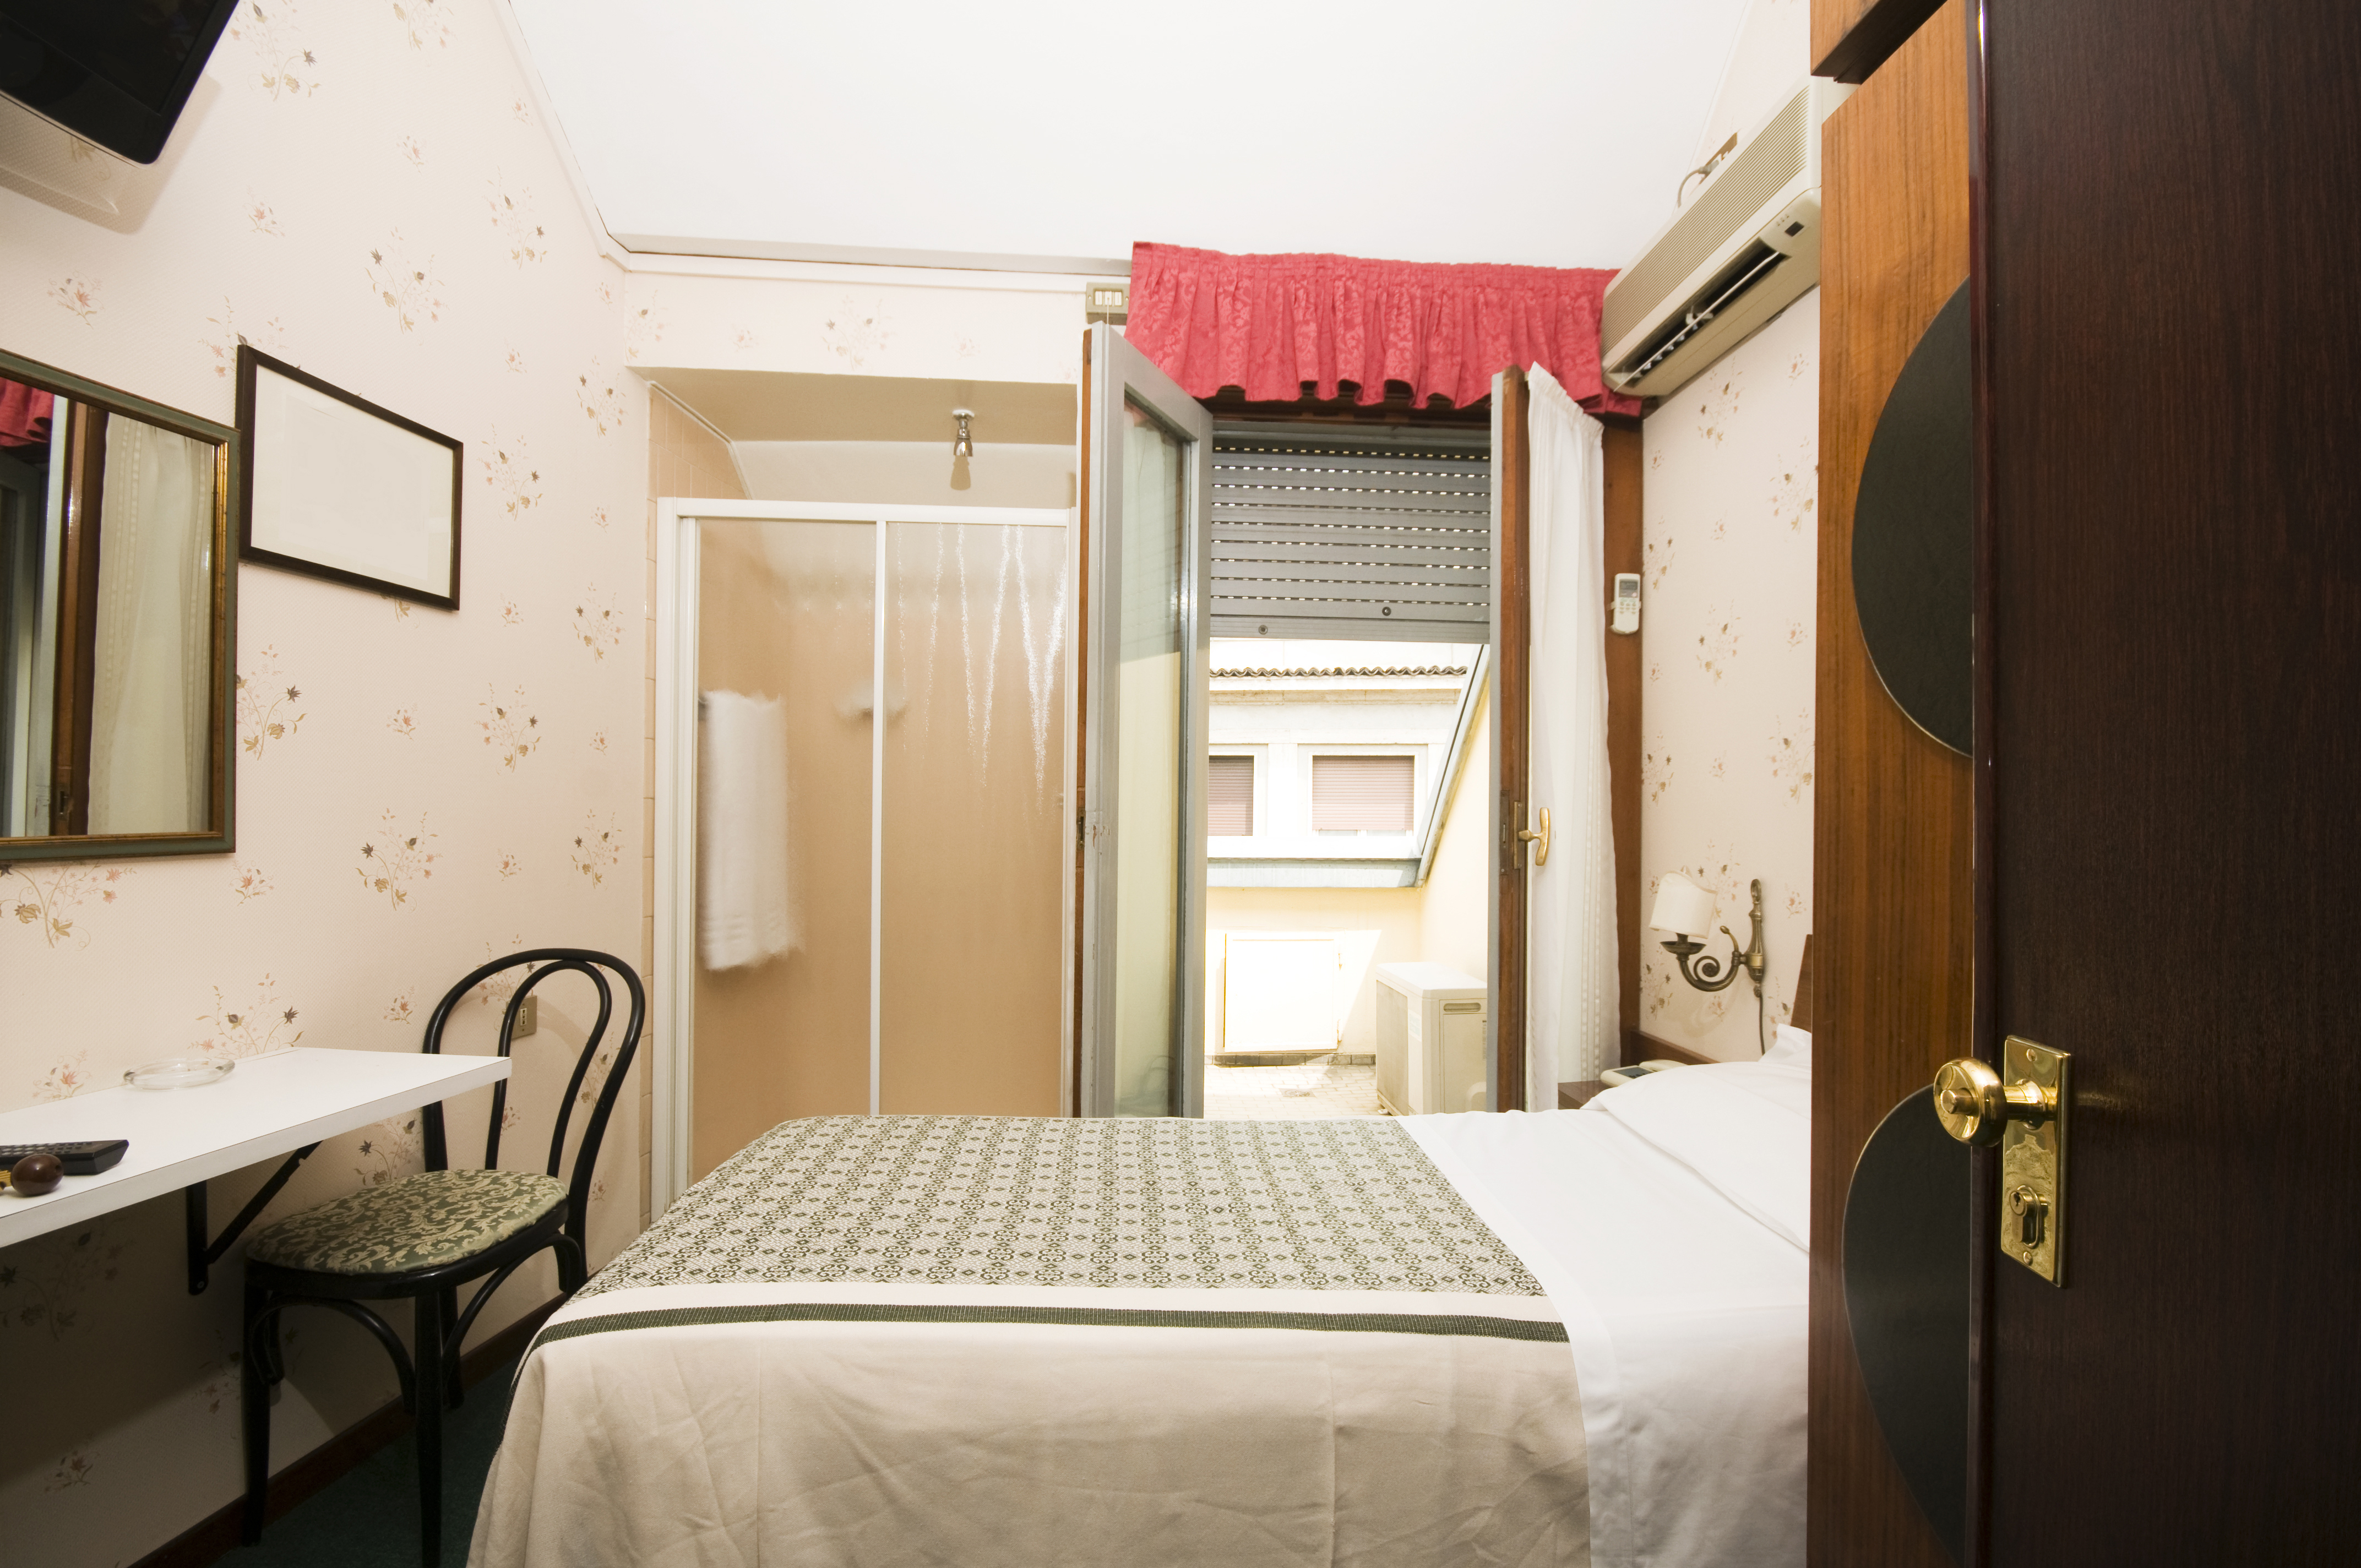 The Benefits Of Running A Small Hotel Business